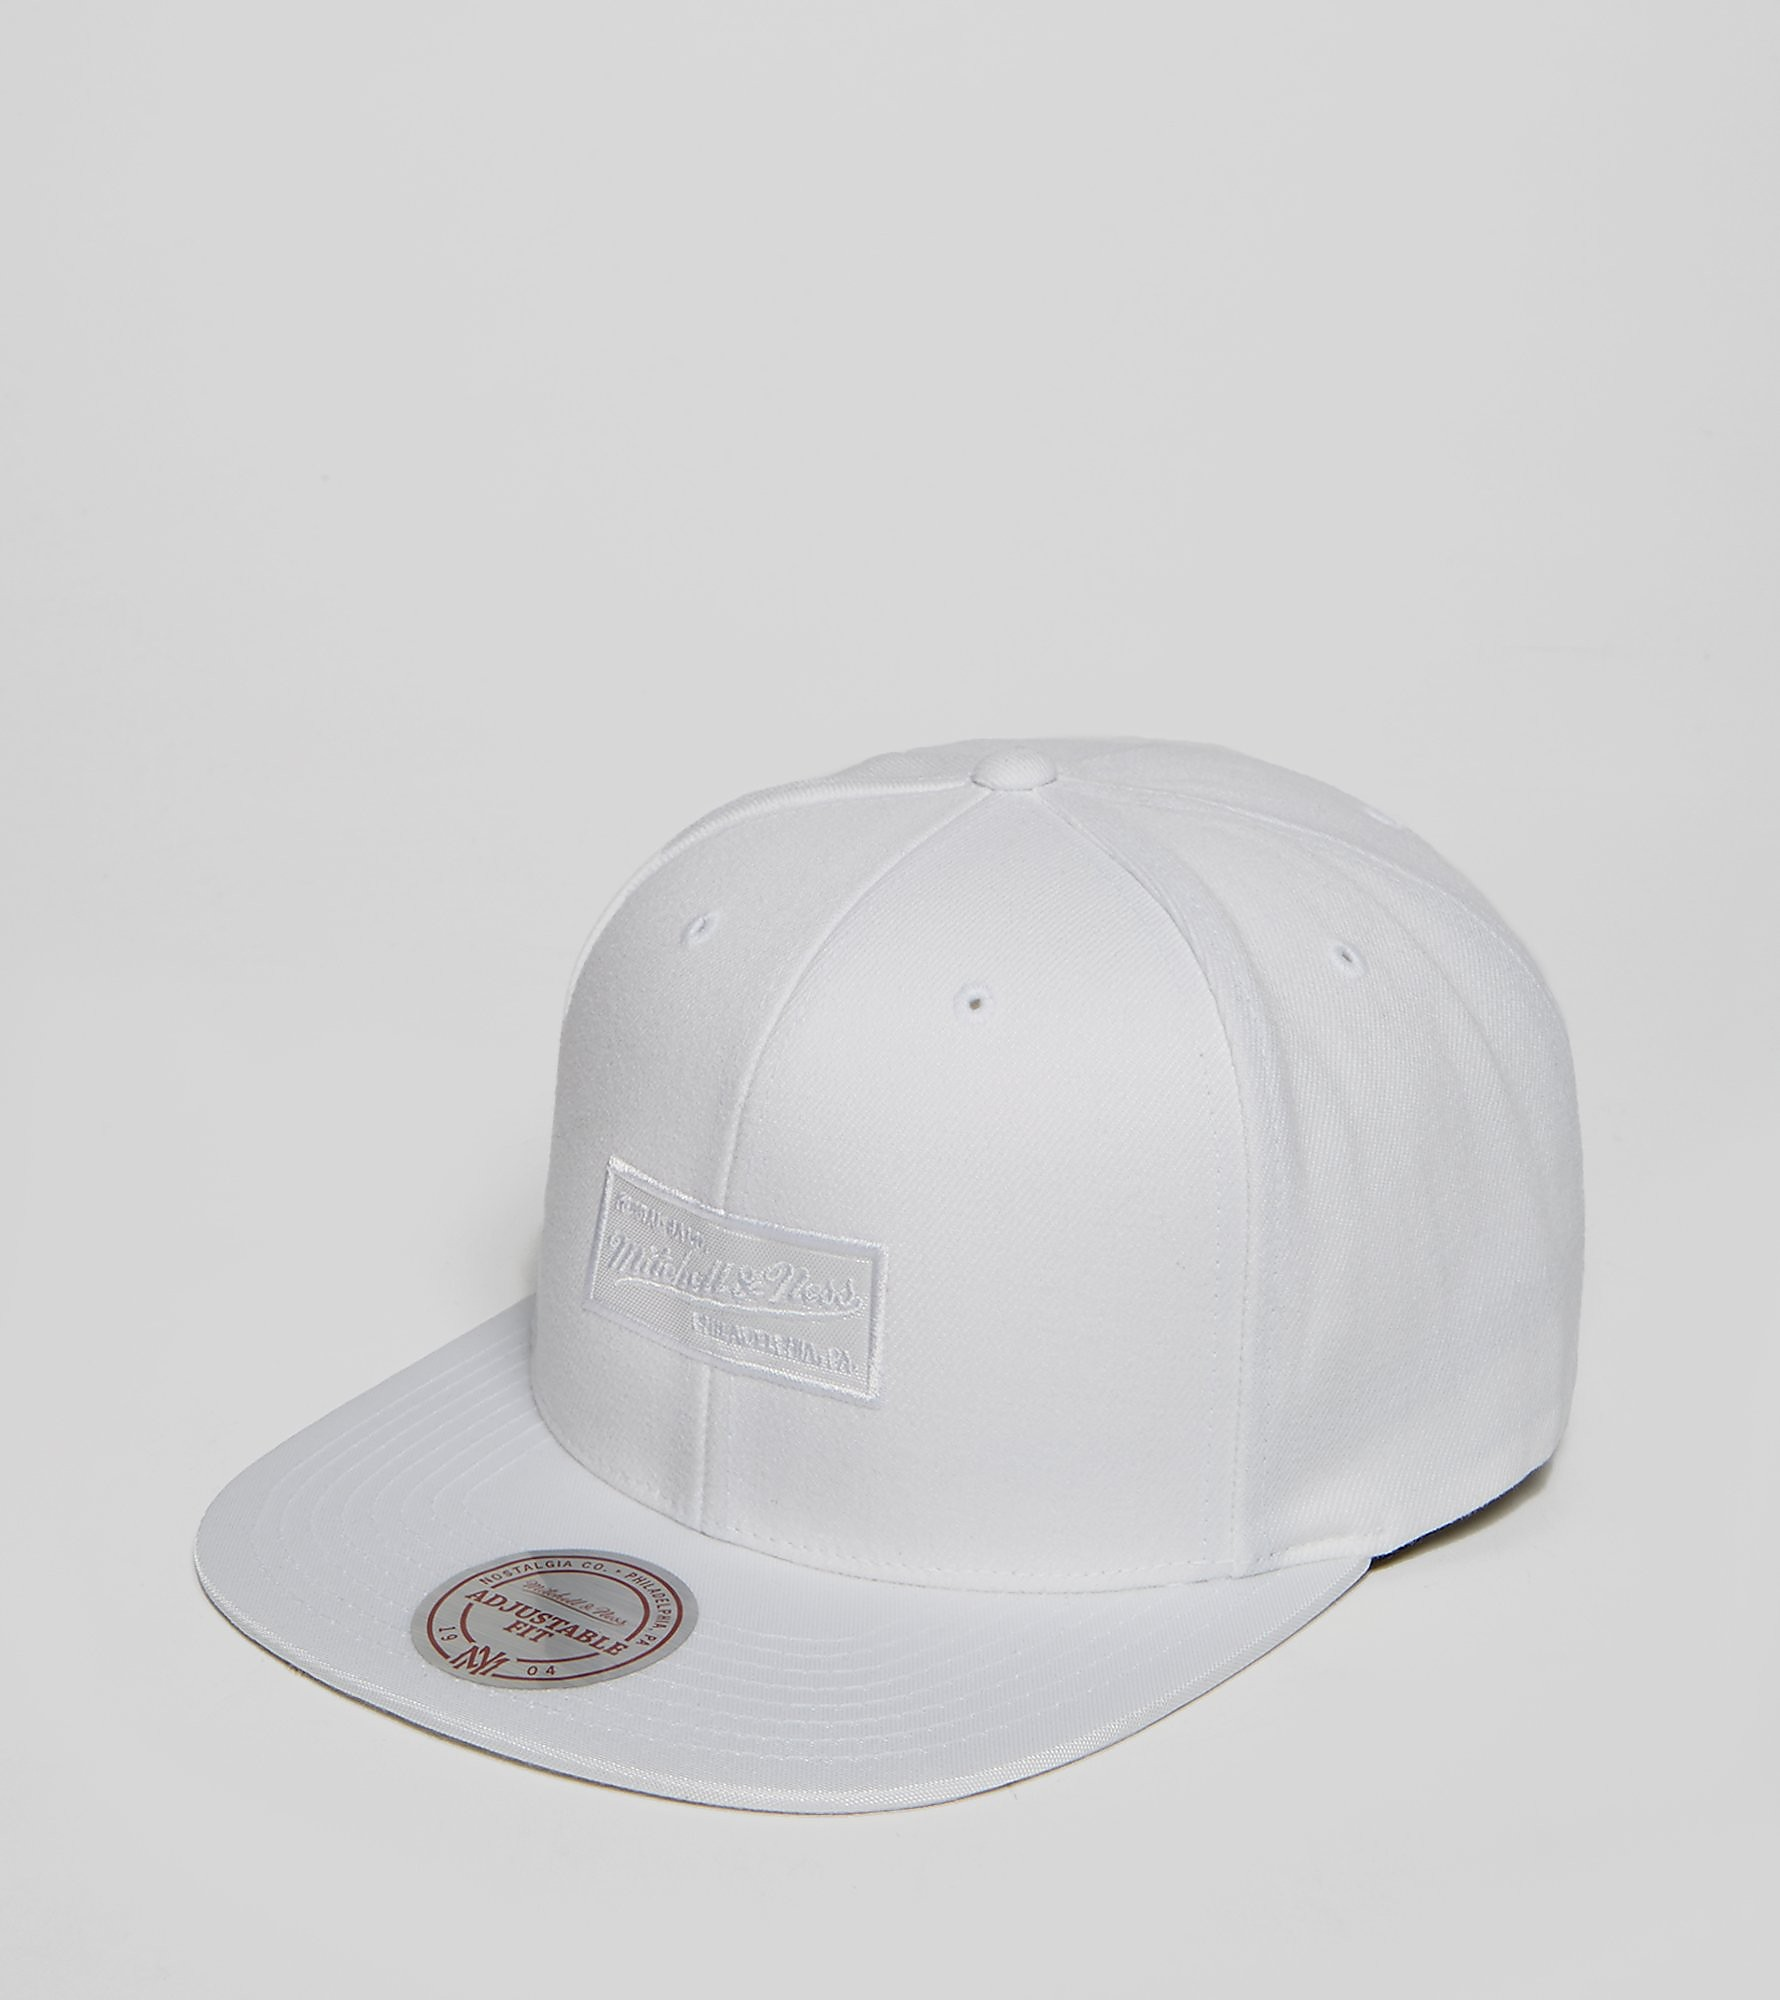 Mitchell & Ness Ballistic Infil Snapback Cap - size? Exclusive